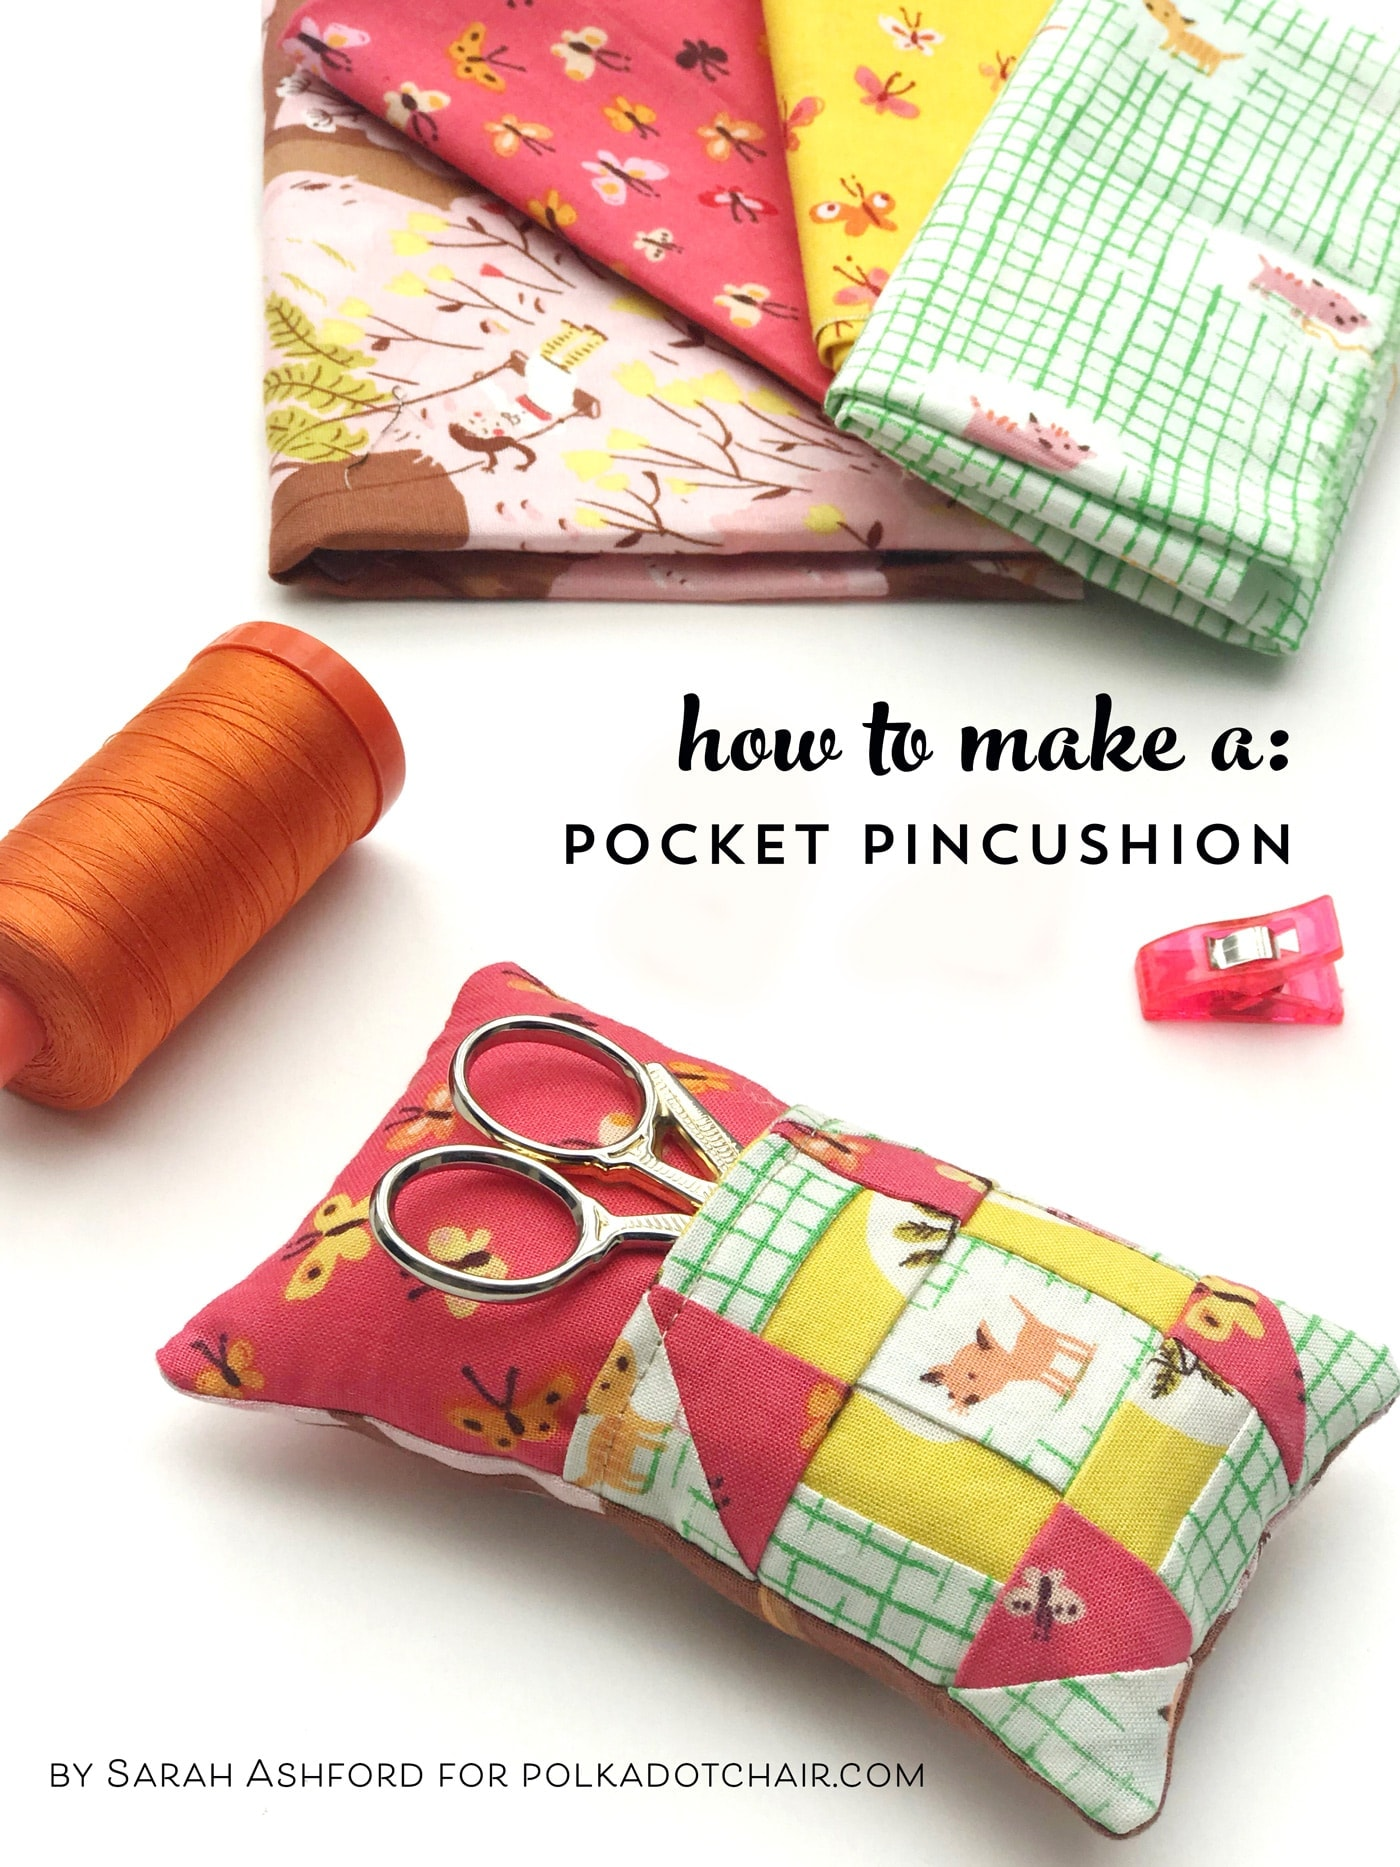 How to make your own Pincushion with a Pocket